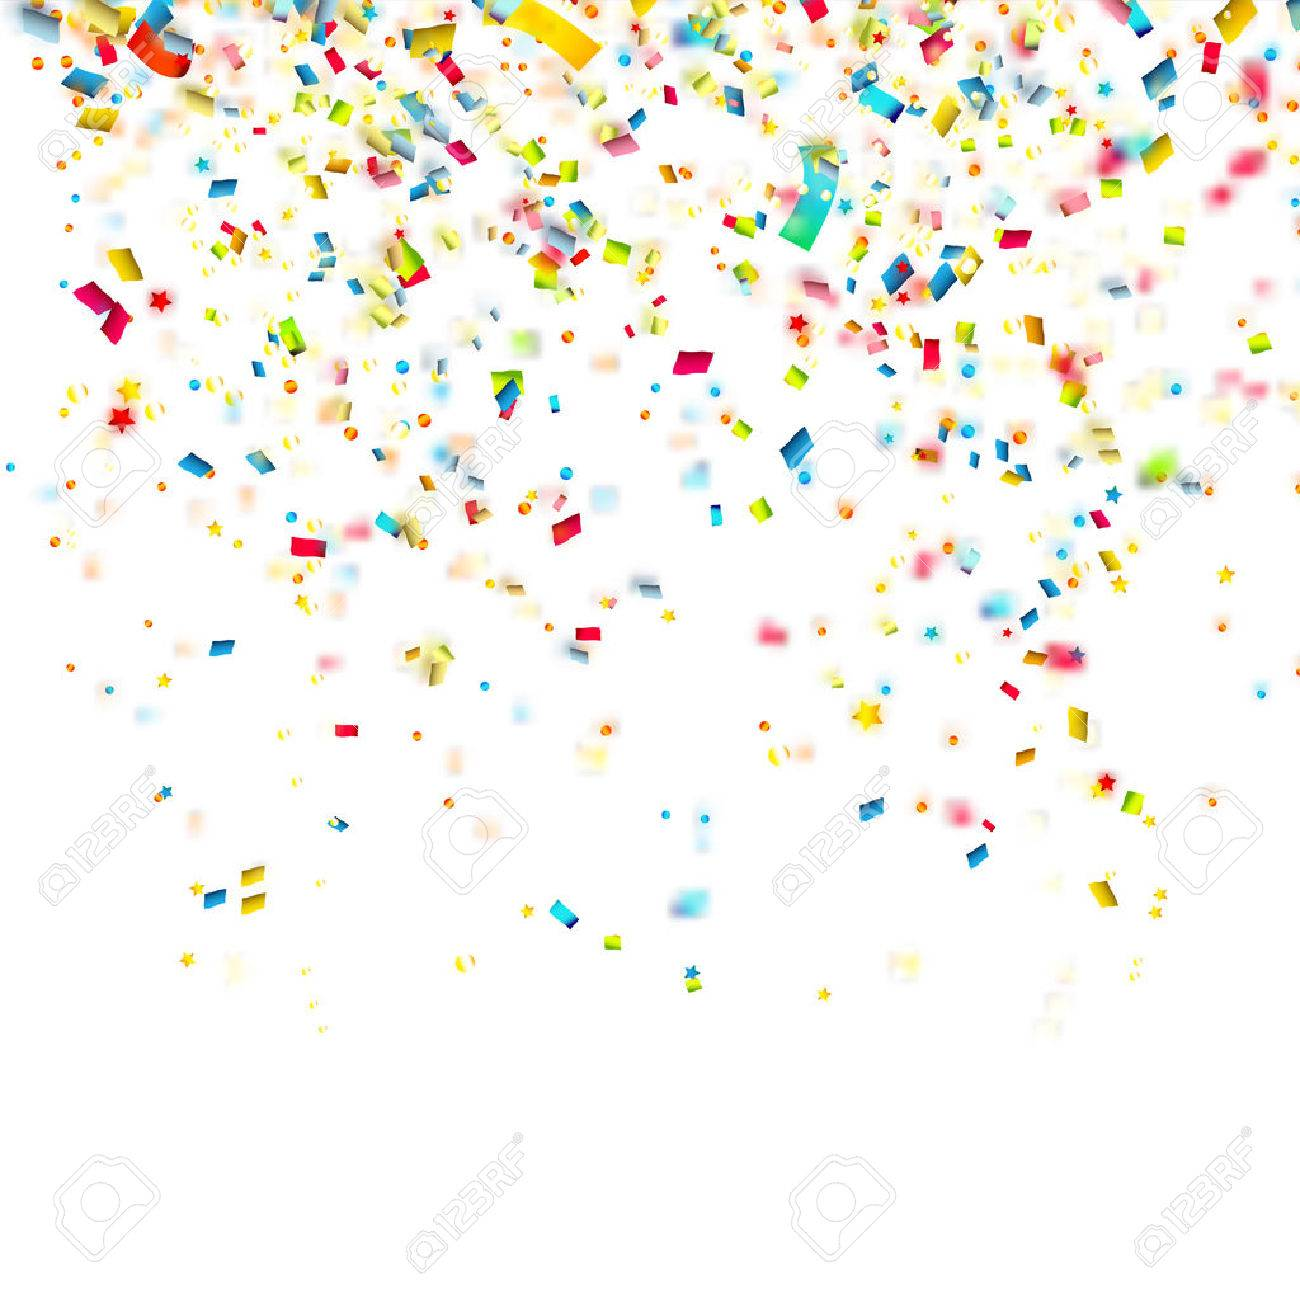 Birthday background with colorful confetti.